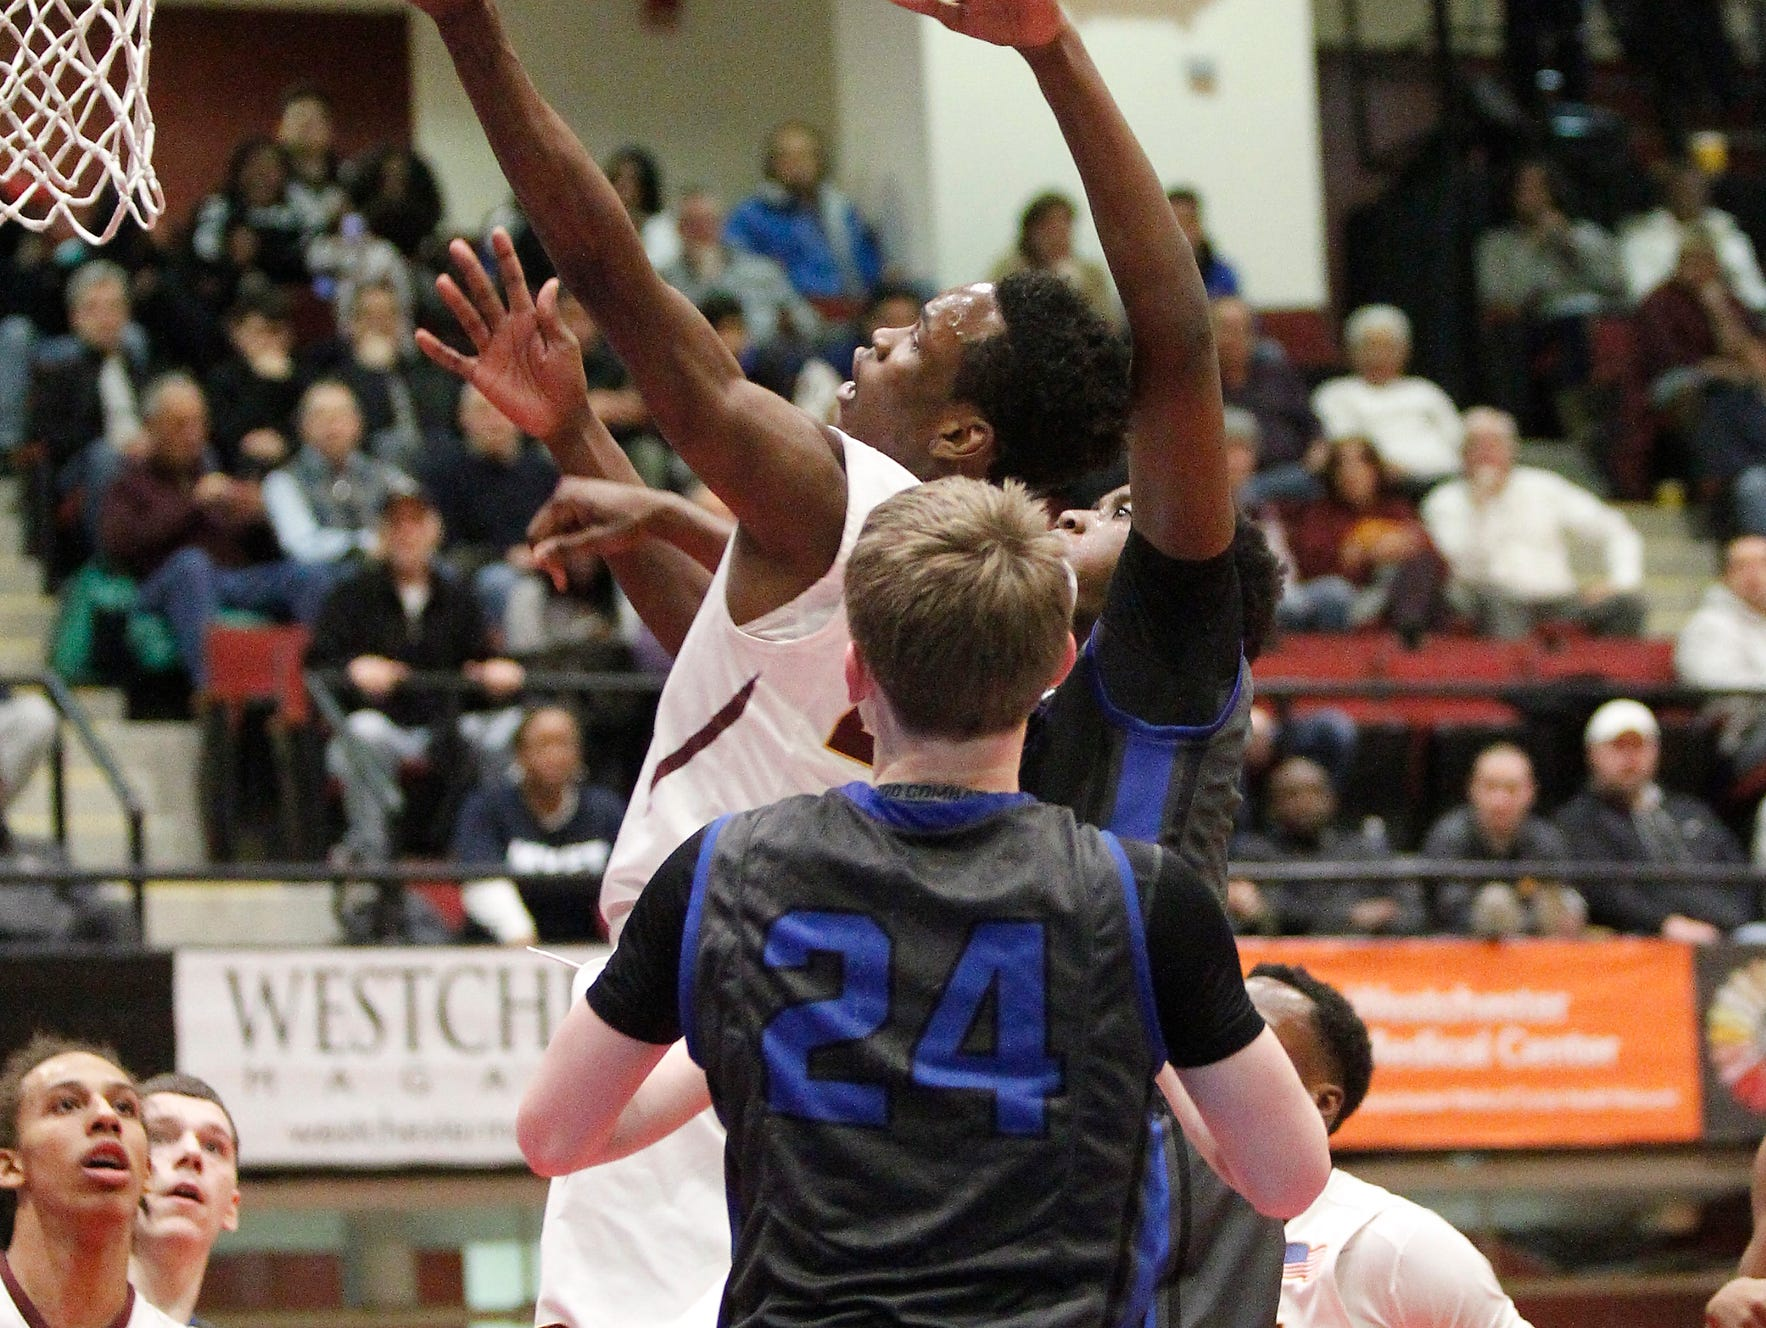 Mount Vernon's Marco Morency (20) works a lay-up during the boys Class AA semi-final basketball game aainst Saunders at the County Center in White Plains on Friday, February 26, 2016.